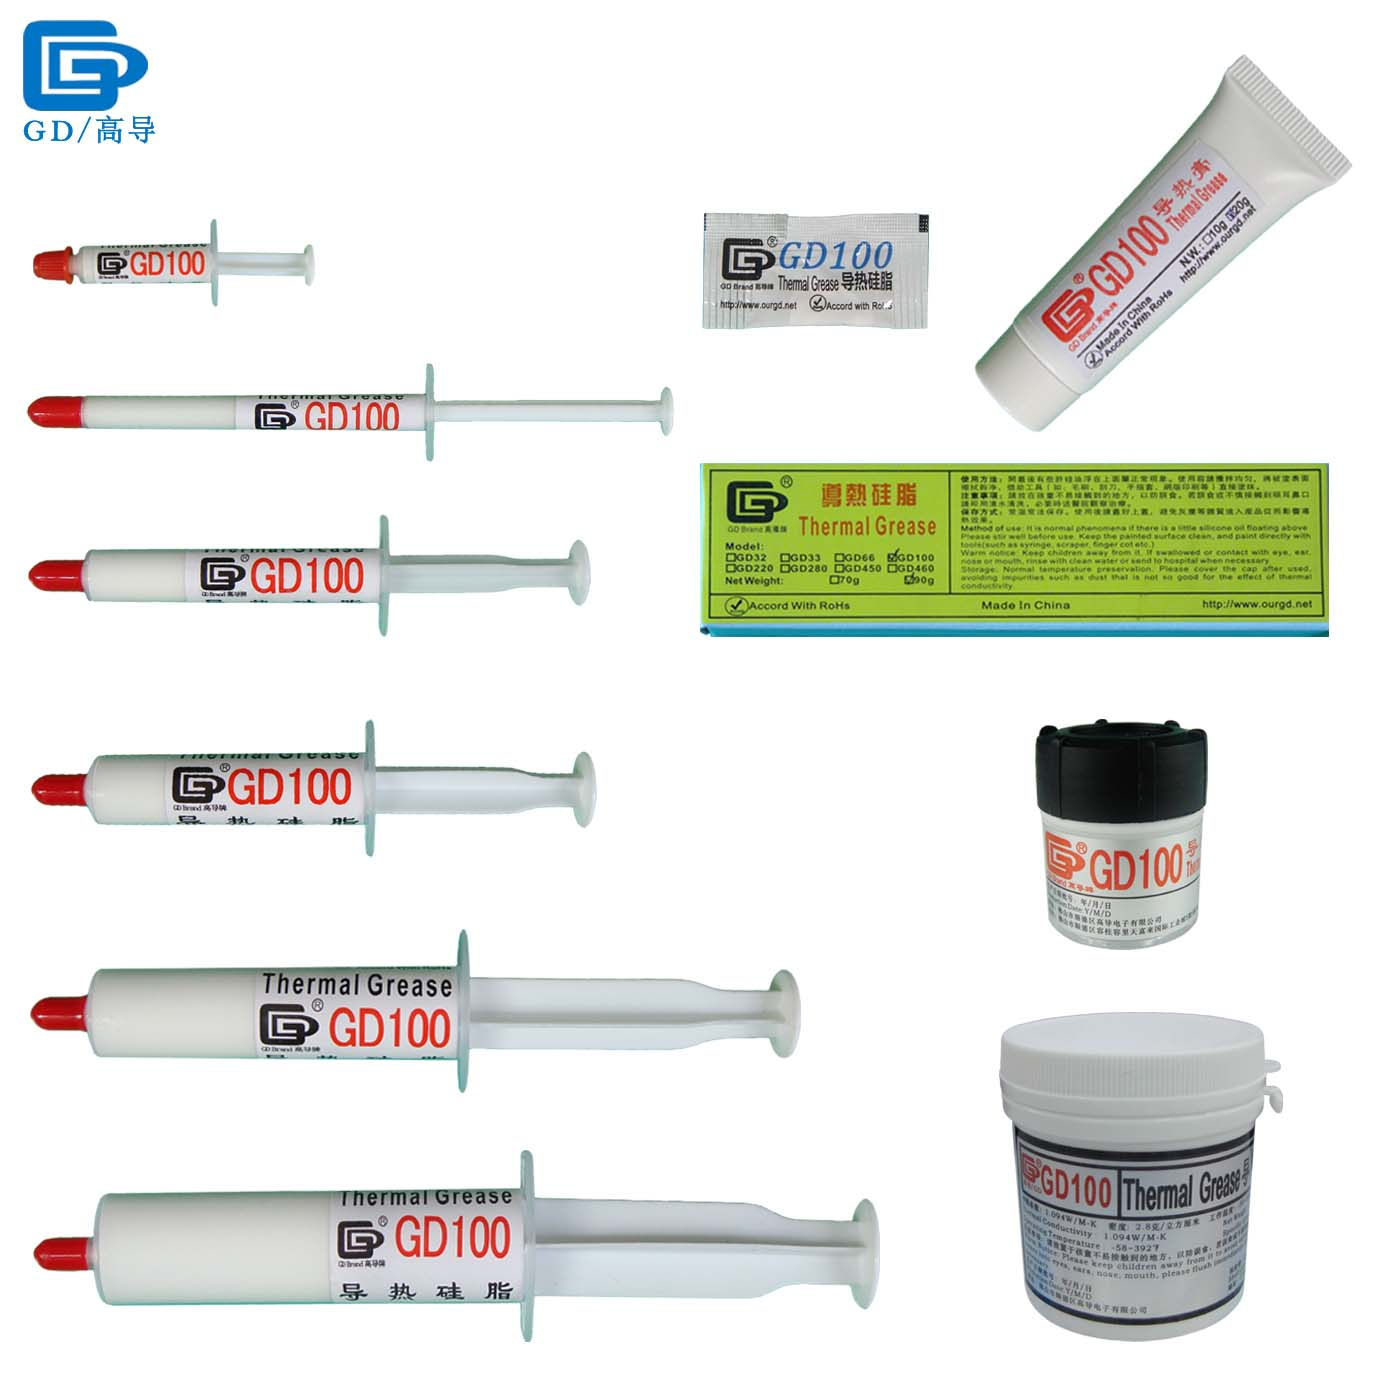 GD100 Thermal Paste Grease Silicone Gesso Dissipatore di calore composto bianco per CPU SSY1 SY1 SY3 SY7 SY15 SY30 MB05 CN20 CN150 ST20 ST90